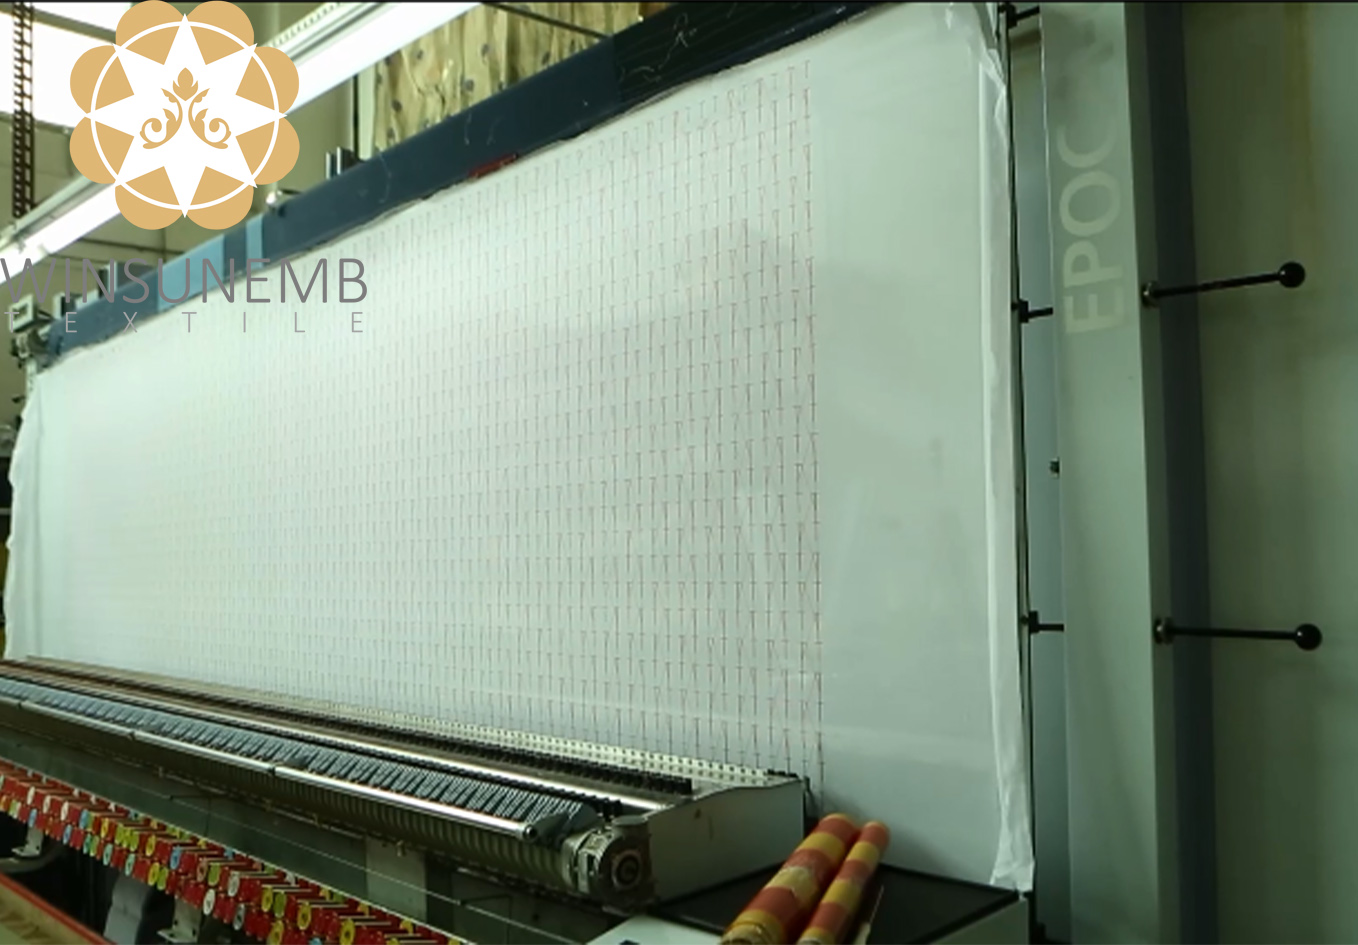 first processes machine production。 the other two machines are: multi-head embroidery machine and sample machine, and there is a second process professional cutting yarn.-Winsunemb